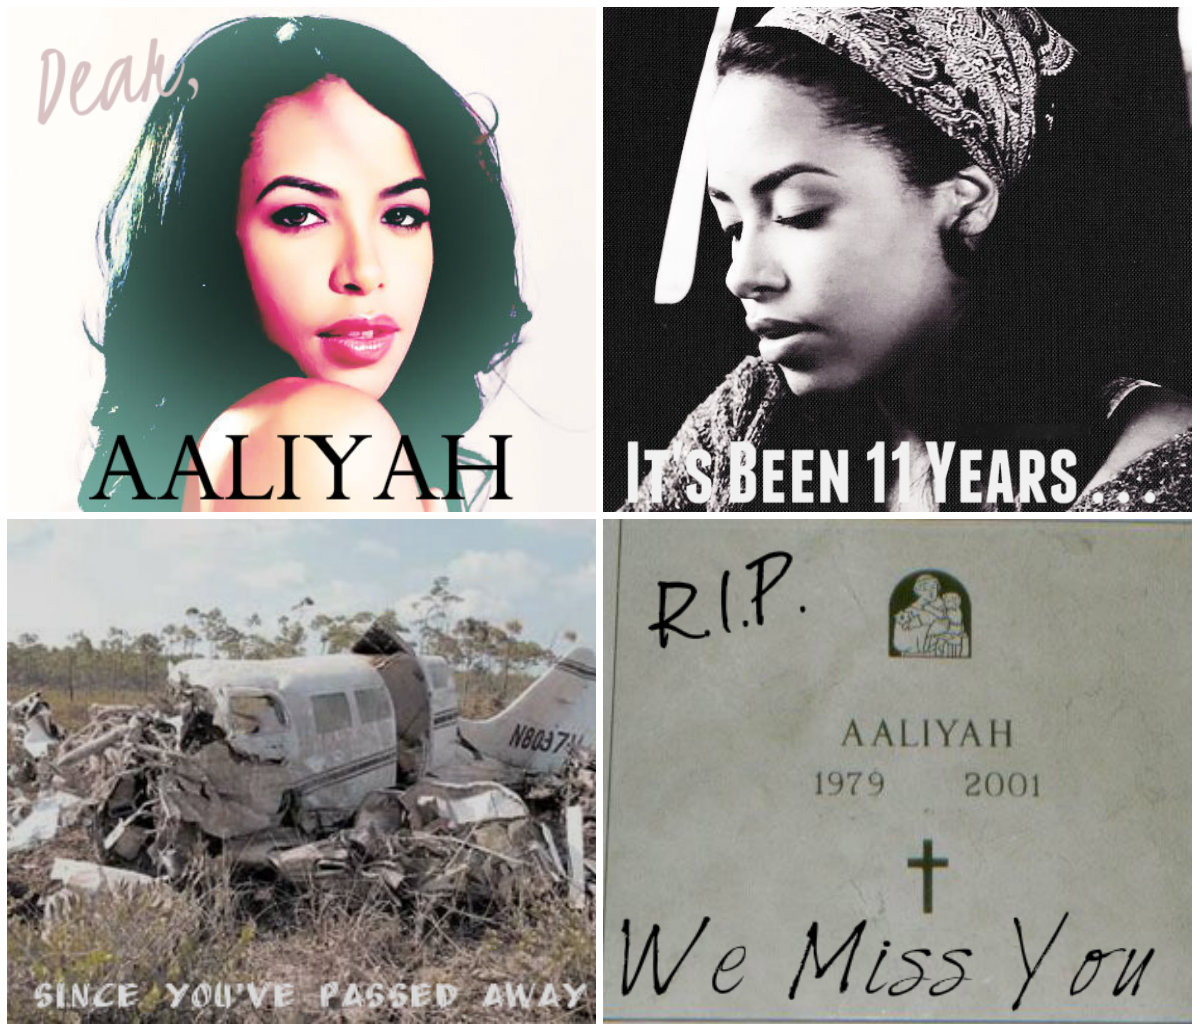 Aaliyah Dead Body Photos Since her death in 2001